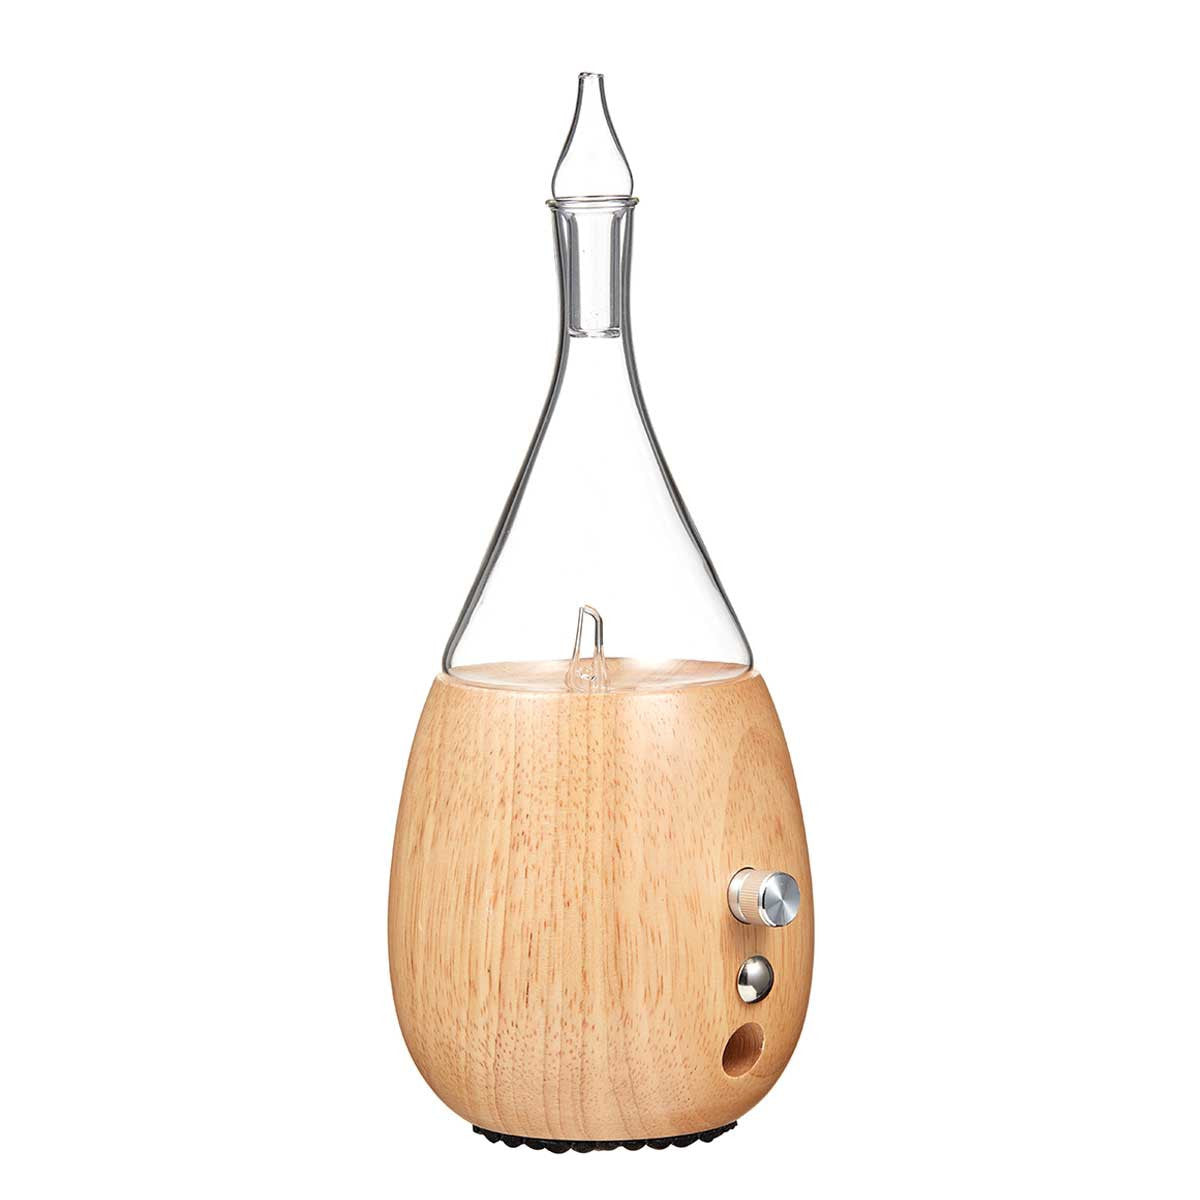 Diffuser And Oils Part - 47: Raindrop Essential Oil Diffuser By Organic Aromas ...